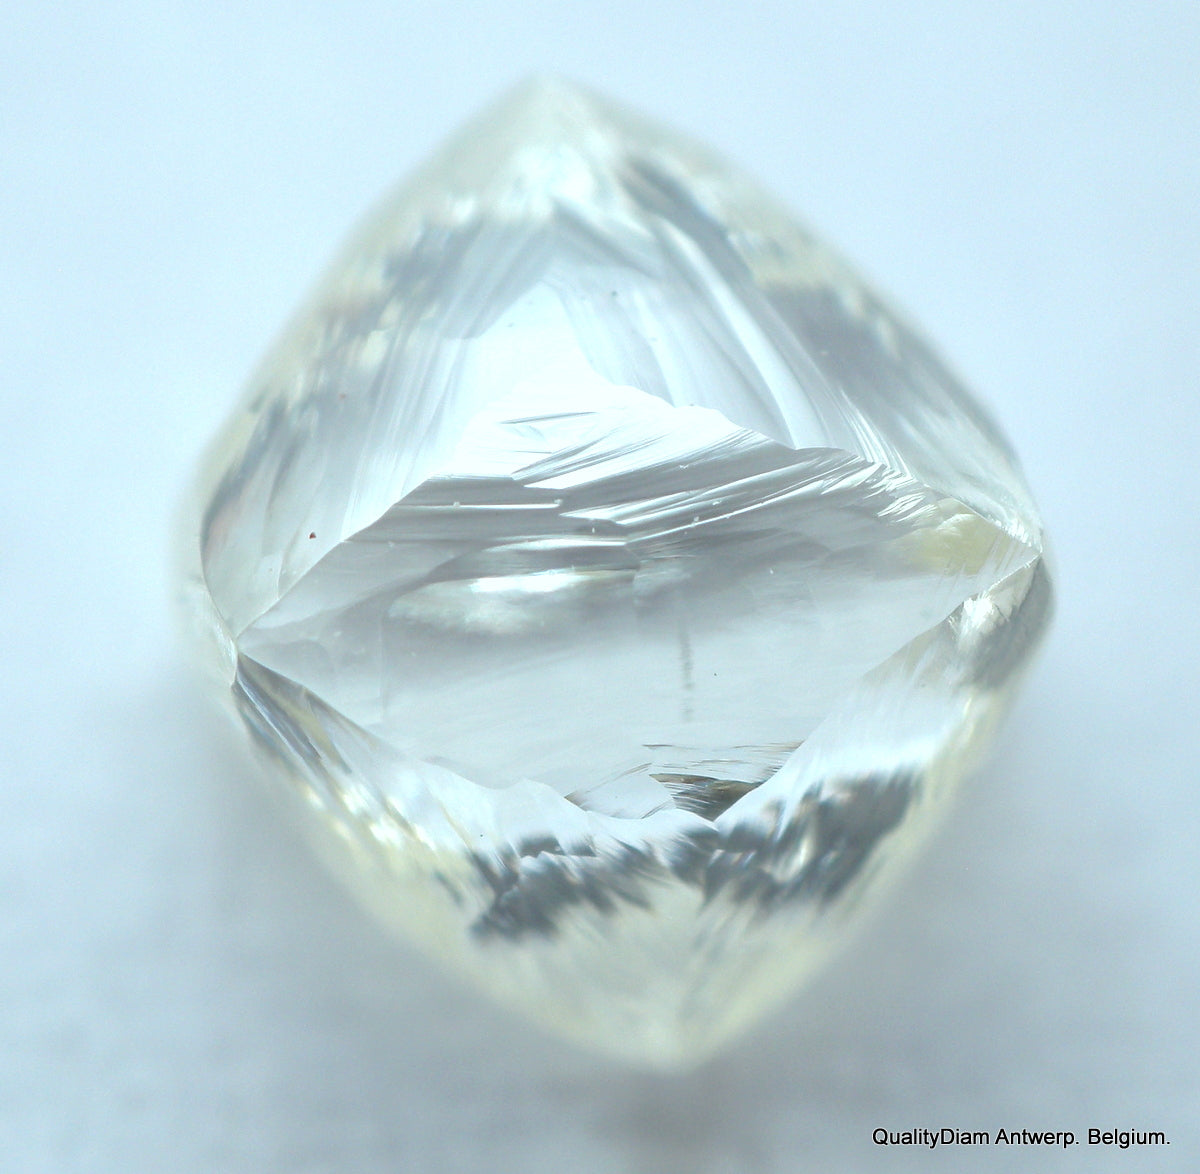 G VVS1, 0.91 CARAT BEAUTIFUL DIAMOND READY TO MOUNT IN A JEWEL. NATURAL DIAMOND